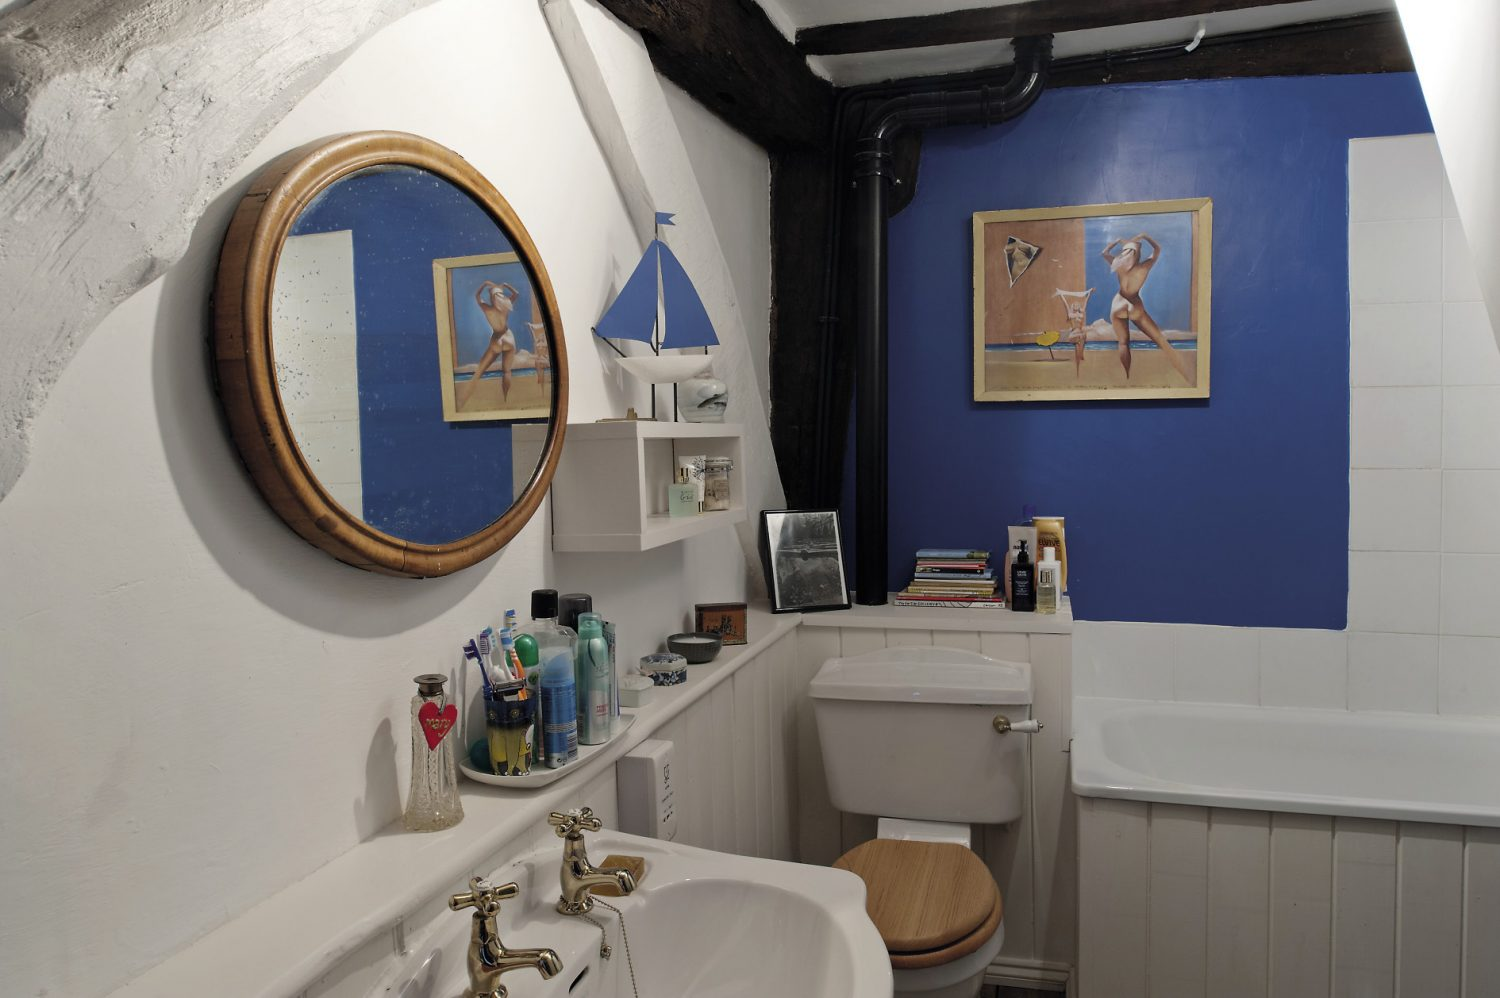 The family bathroom, painted a rich cobalt blue, features artwork collected by David's father